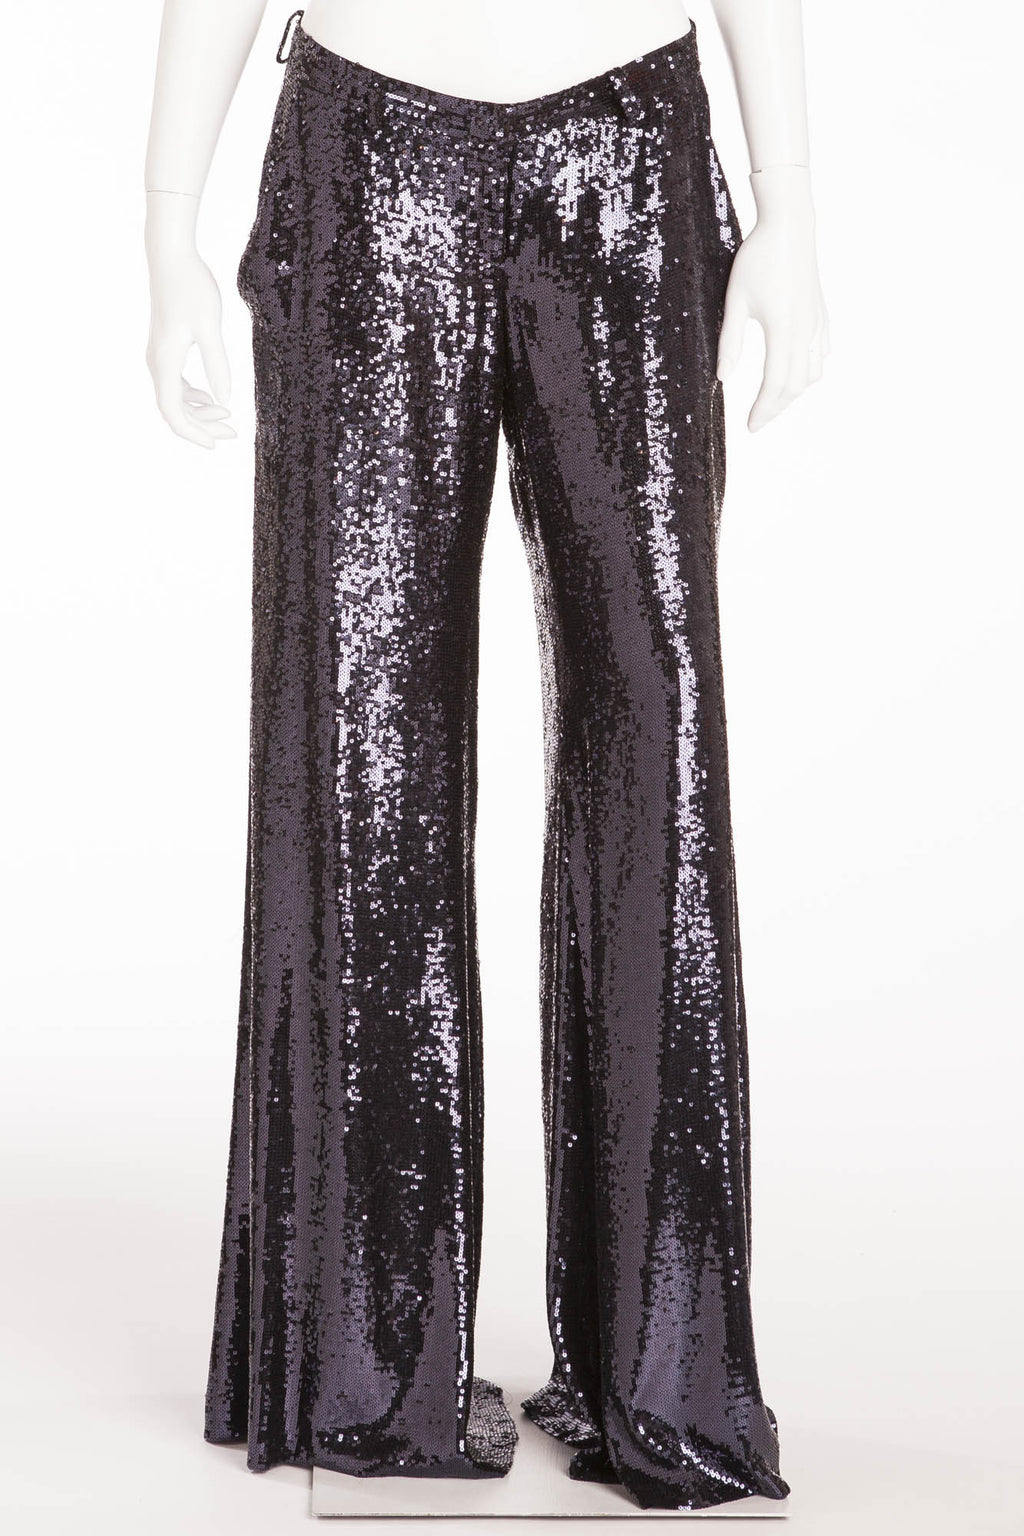 Balmain - New with Tags Blue Sequin Wide Leg Pants - FR 40